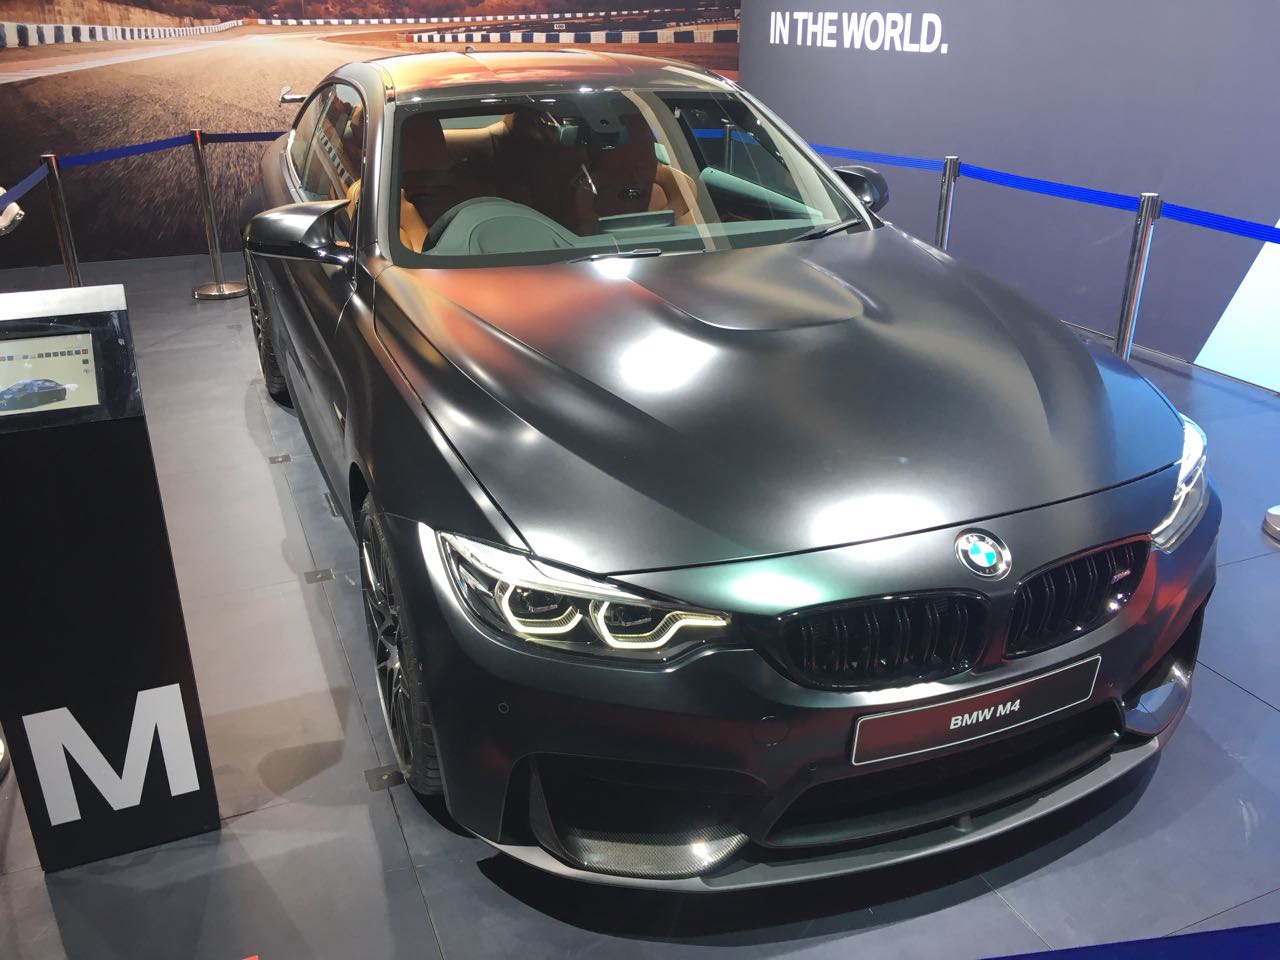 <p>BMW India just revealed the BMW M4 Coupe at Rs 1.35 Cr | 4 litre inline 6 | 450hp | 550 Nm | 0-100 in 4 secs. Available to book.</p>